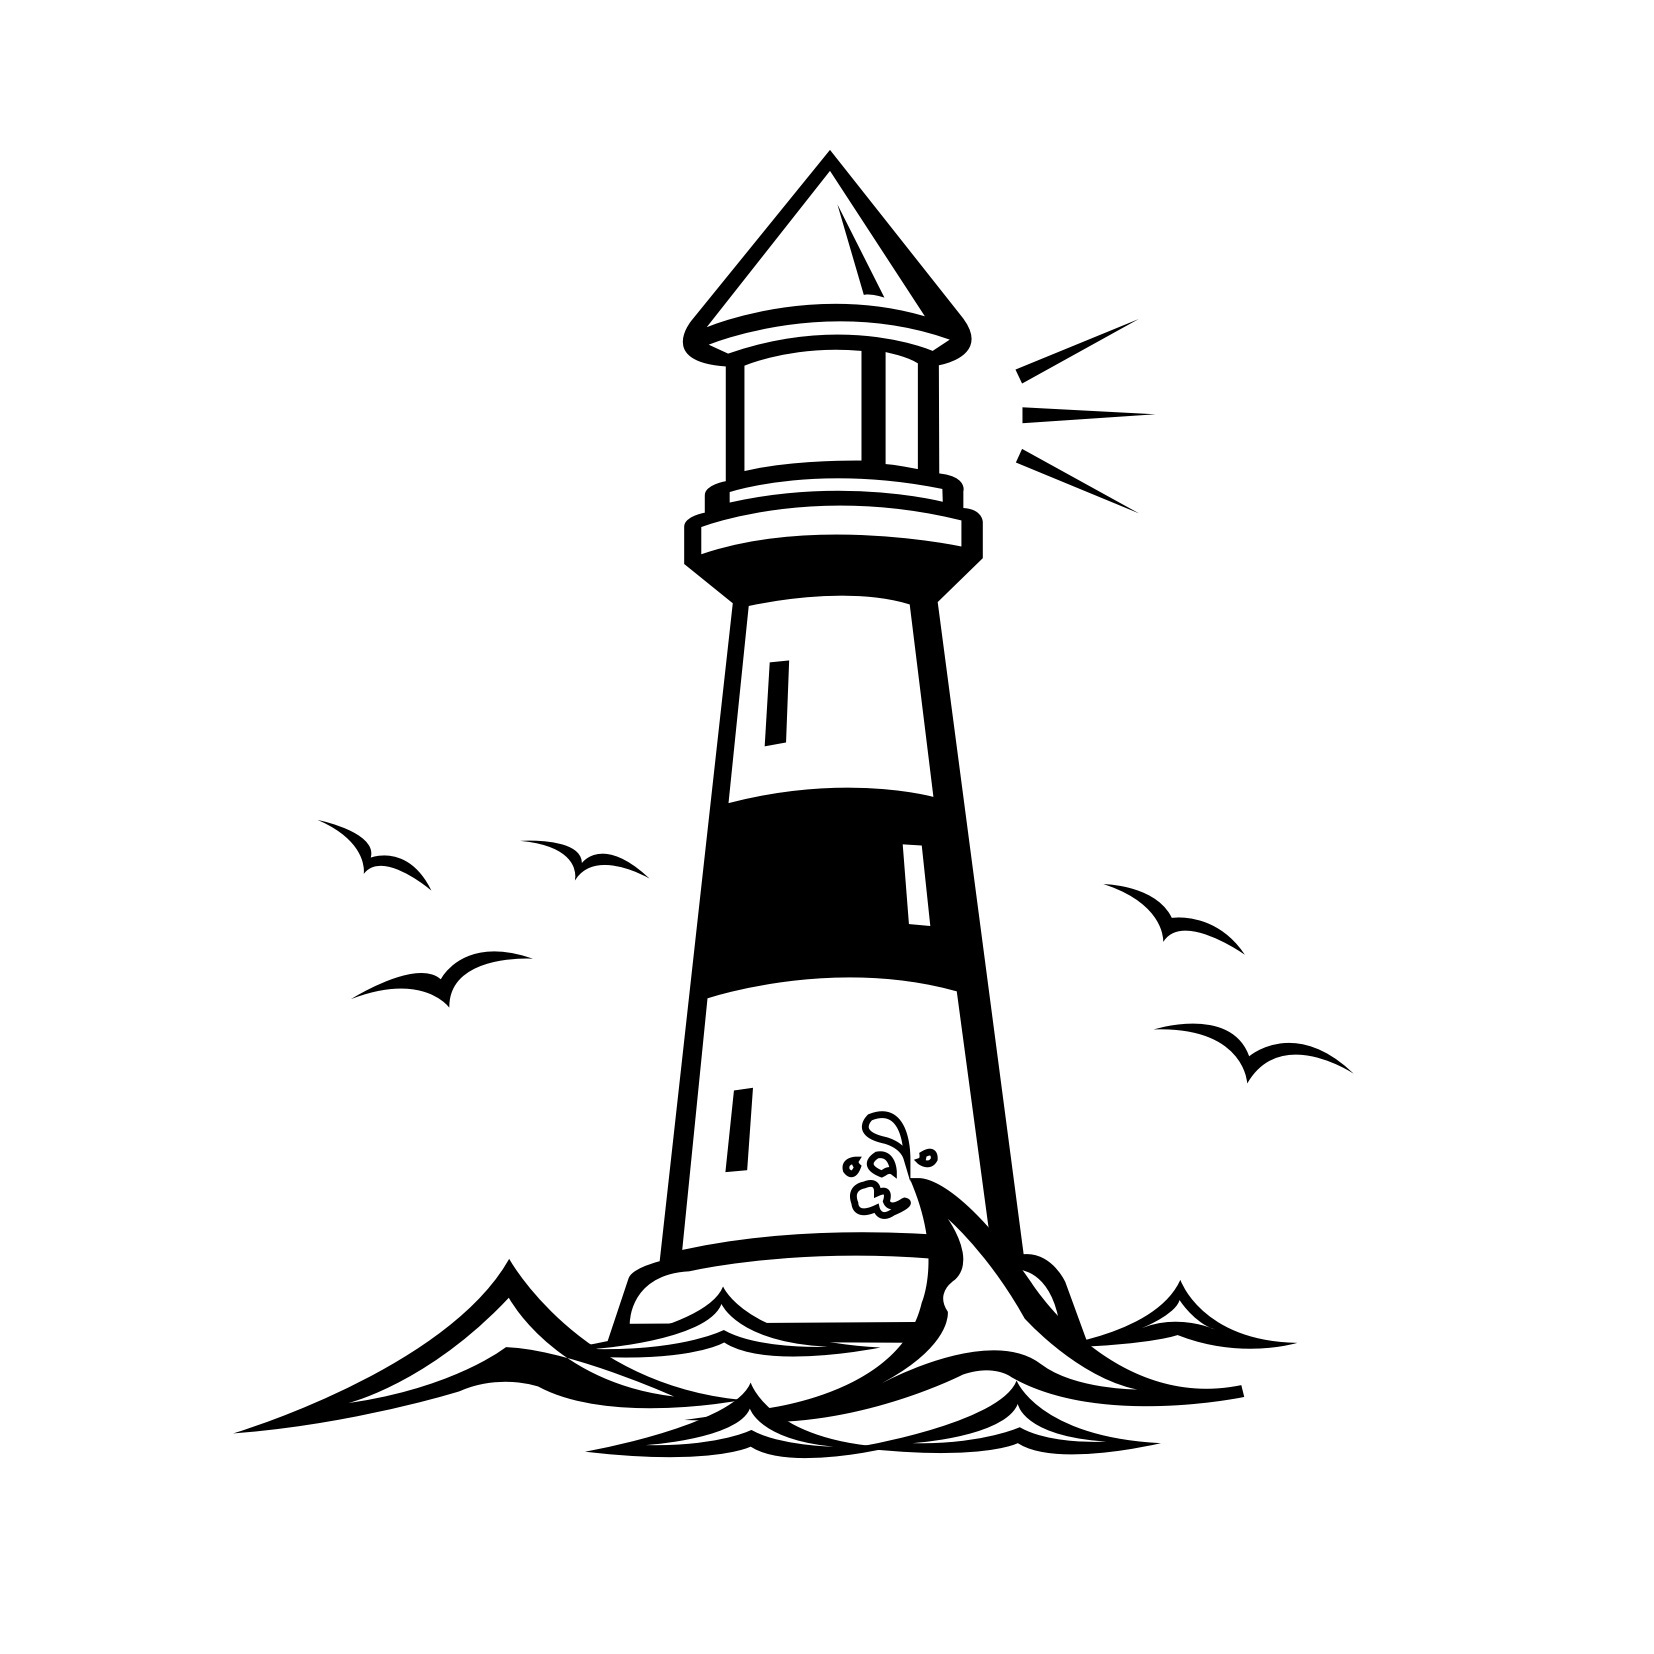 Printable Lighthouse Coloring Pages | ColoringMe.com